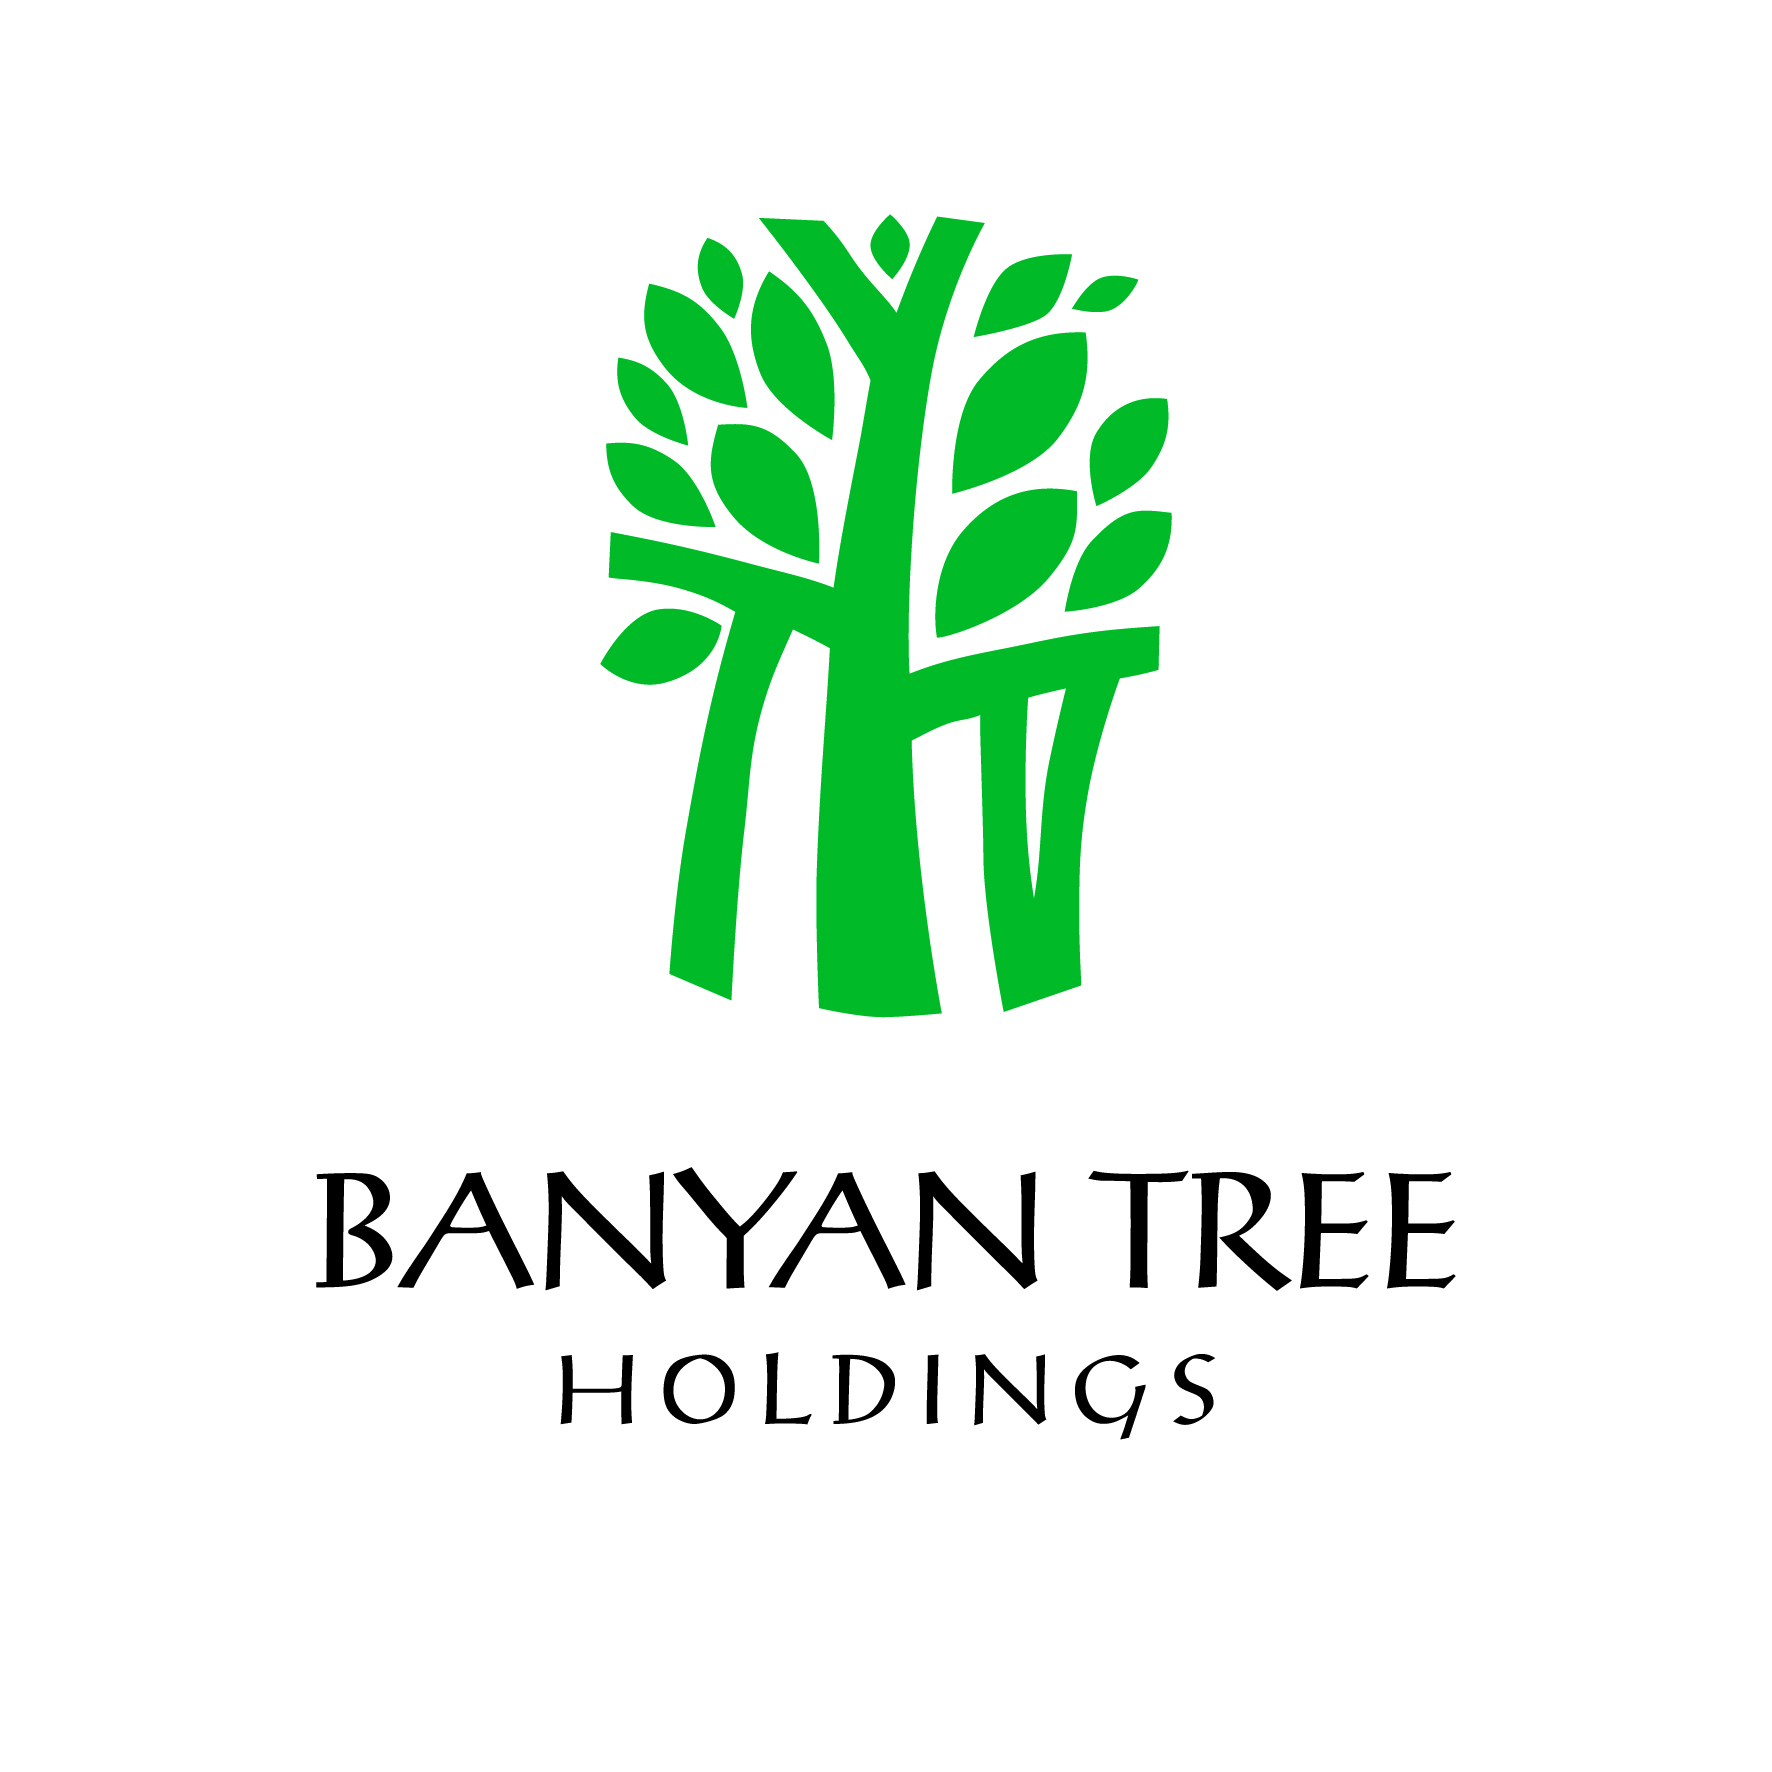 Banyan Tree Holdings